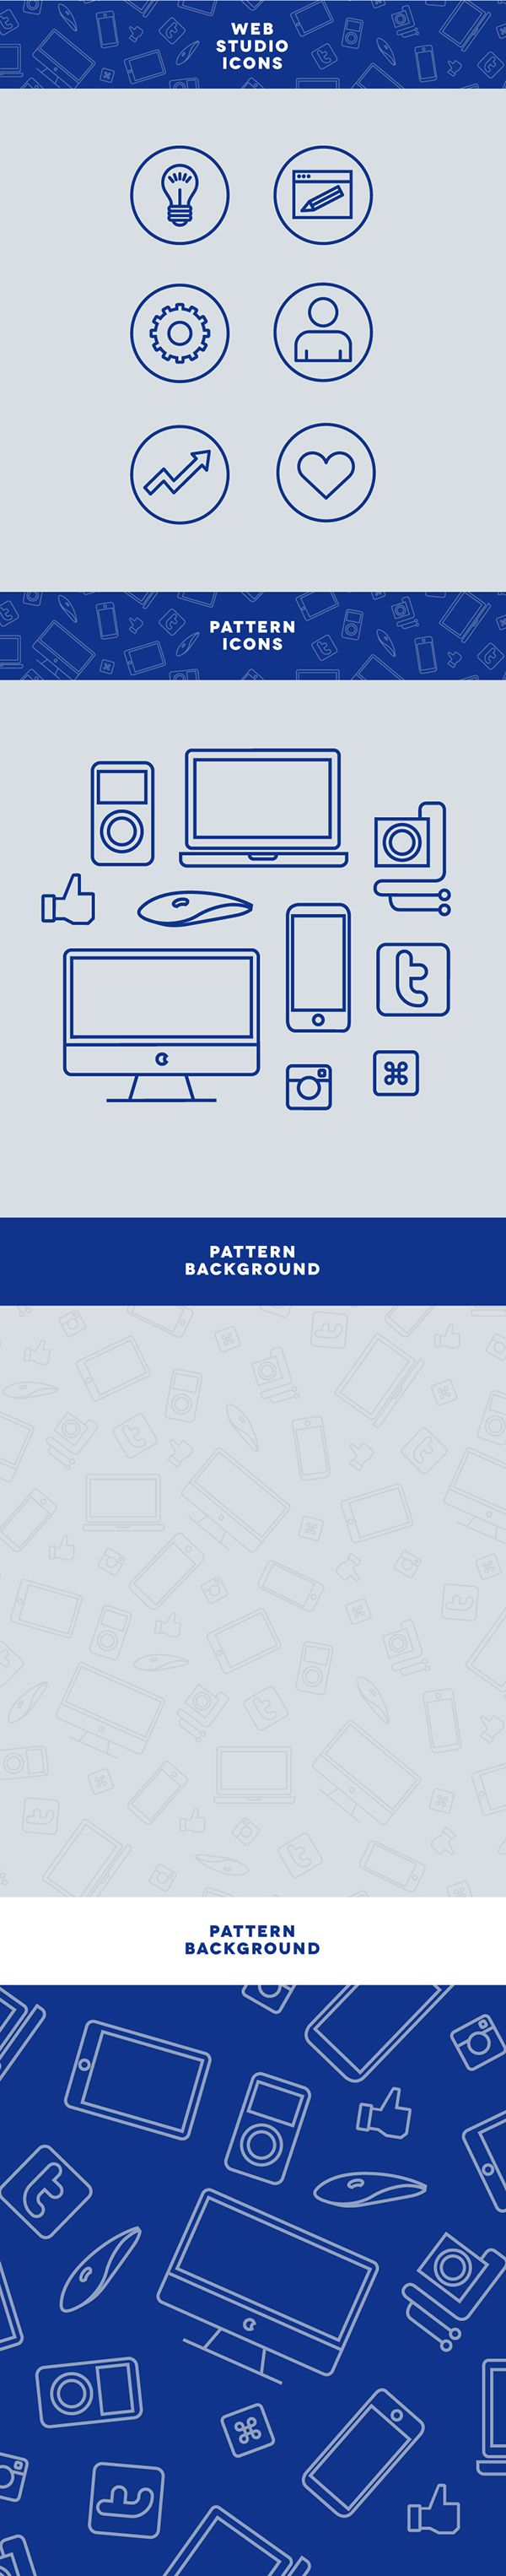 Icons and patterns for web studio banners